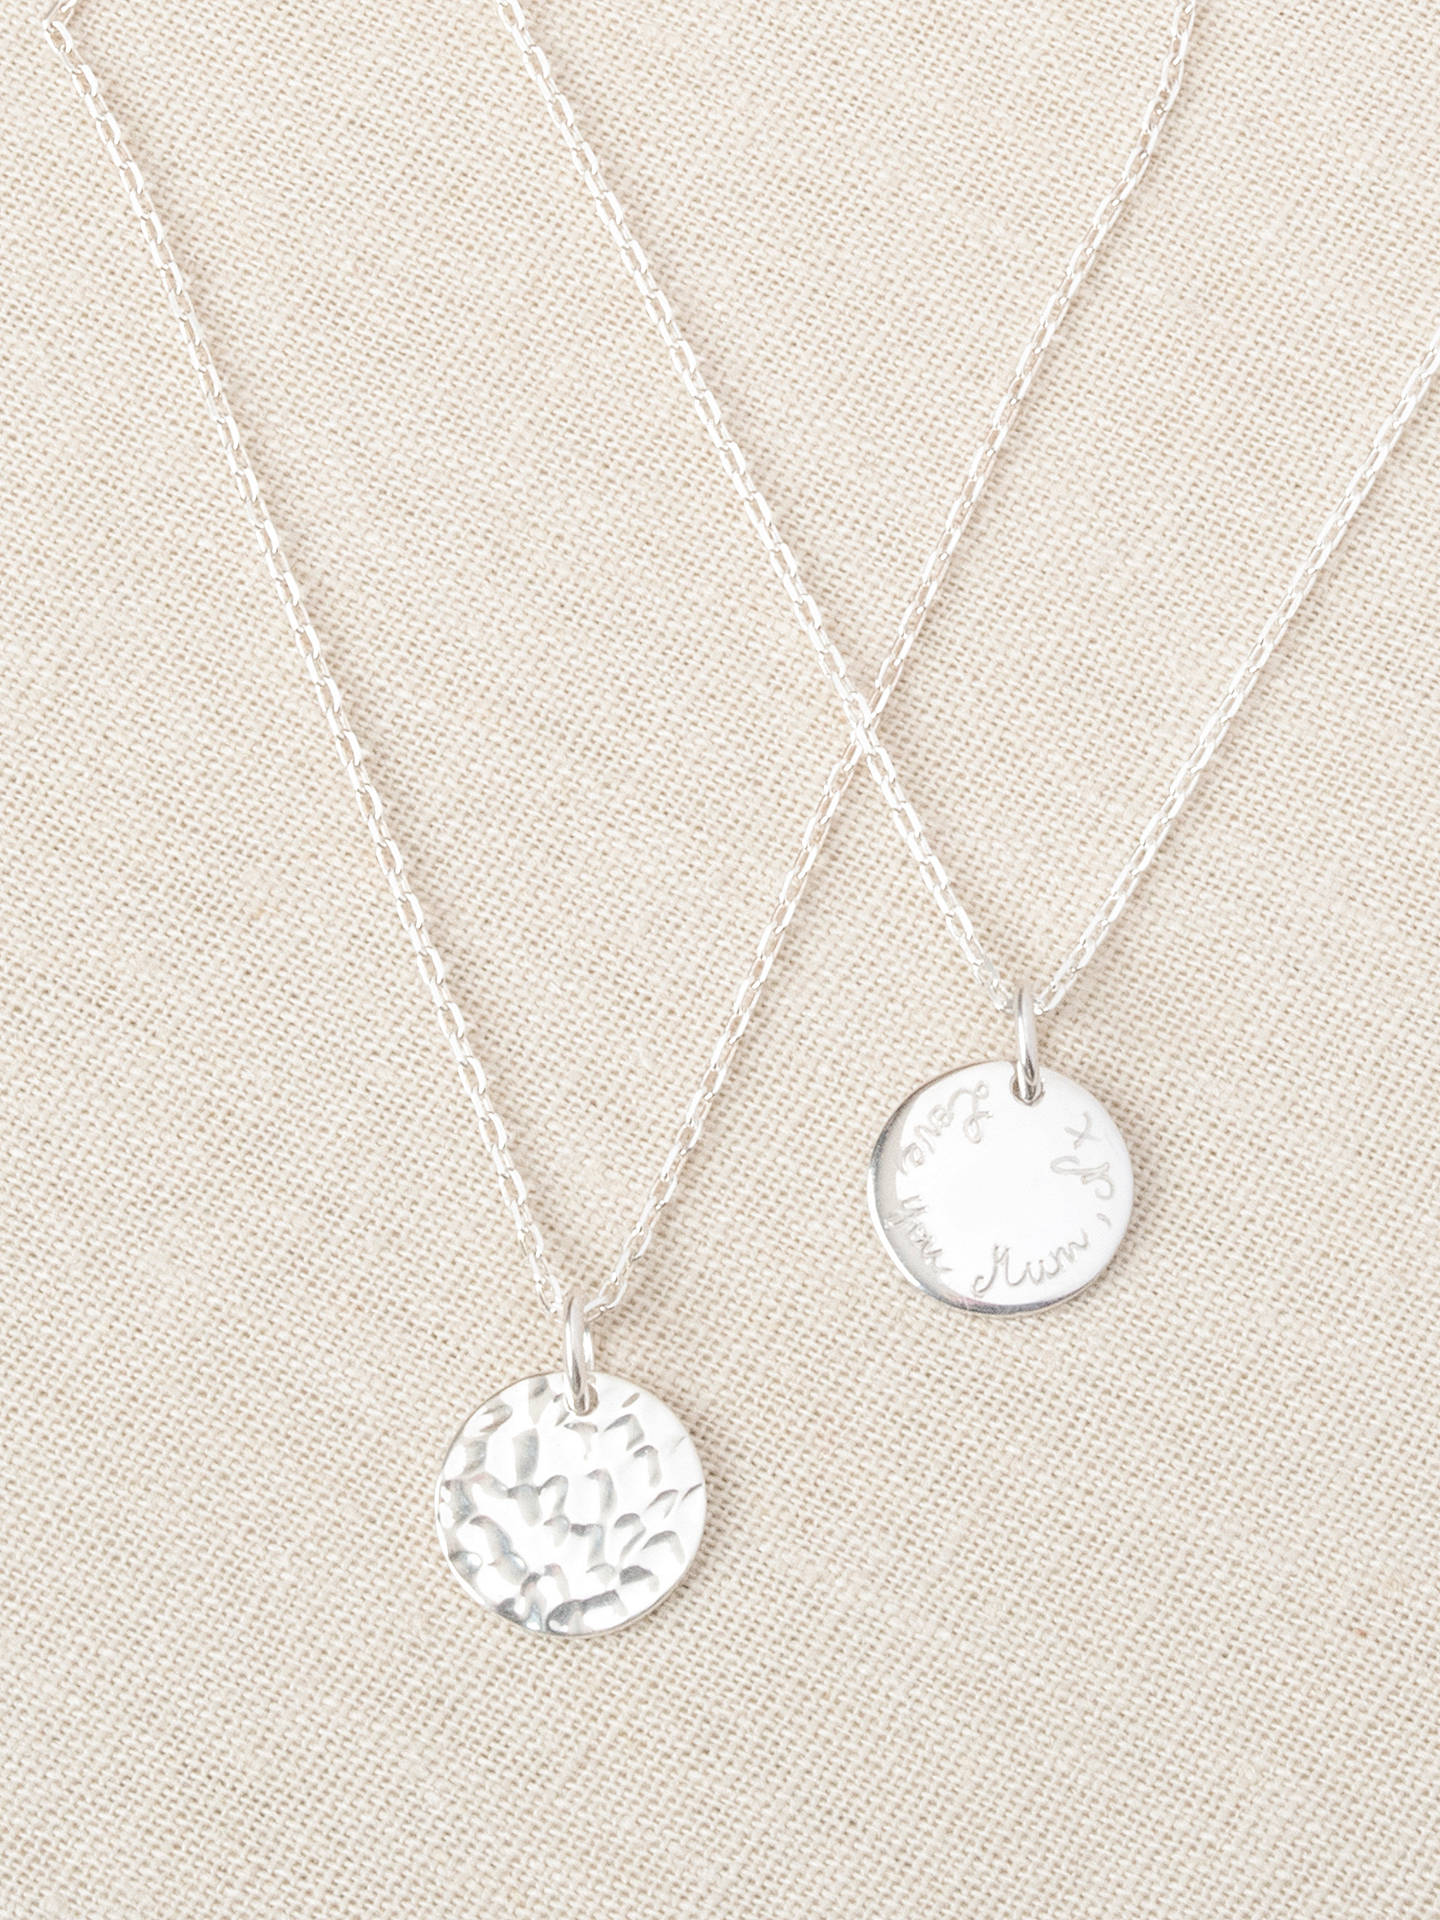 Buy Merci Maman Personalised Small Hammered Pendant Necklace, Silver Online at johnlewis.com